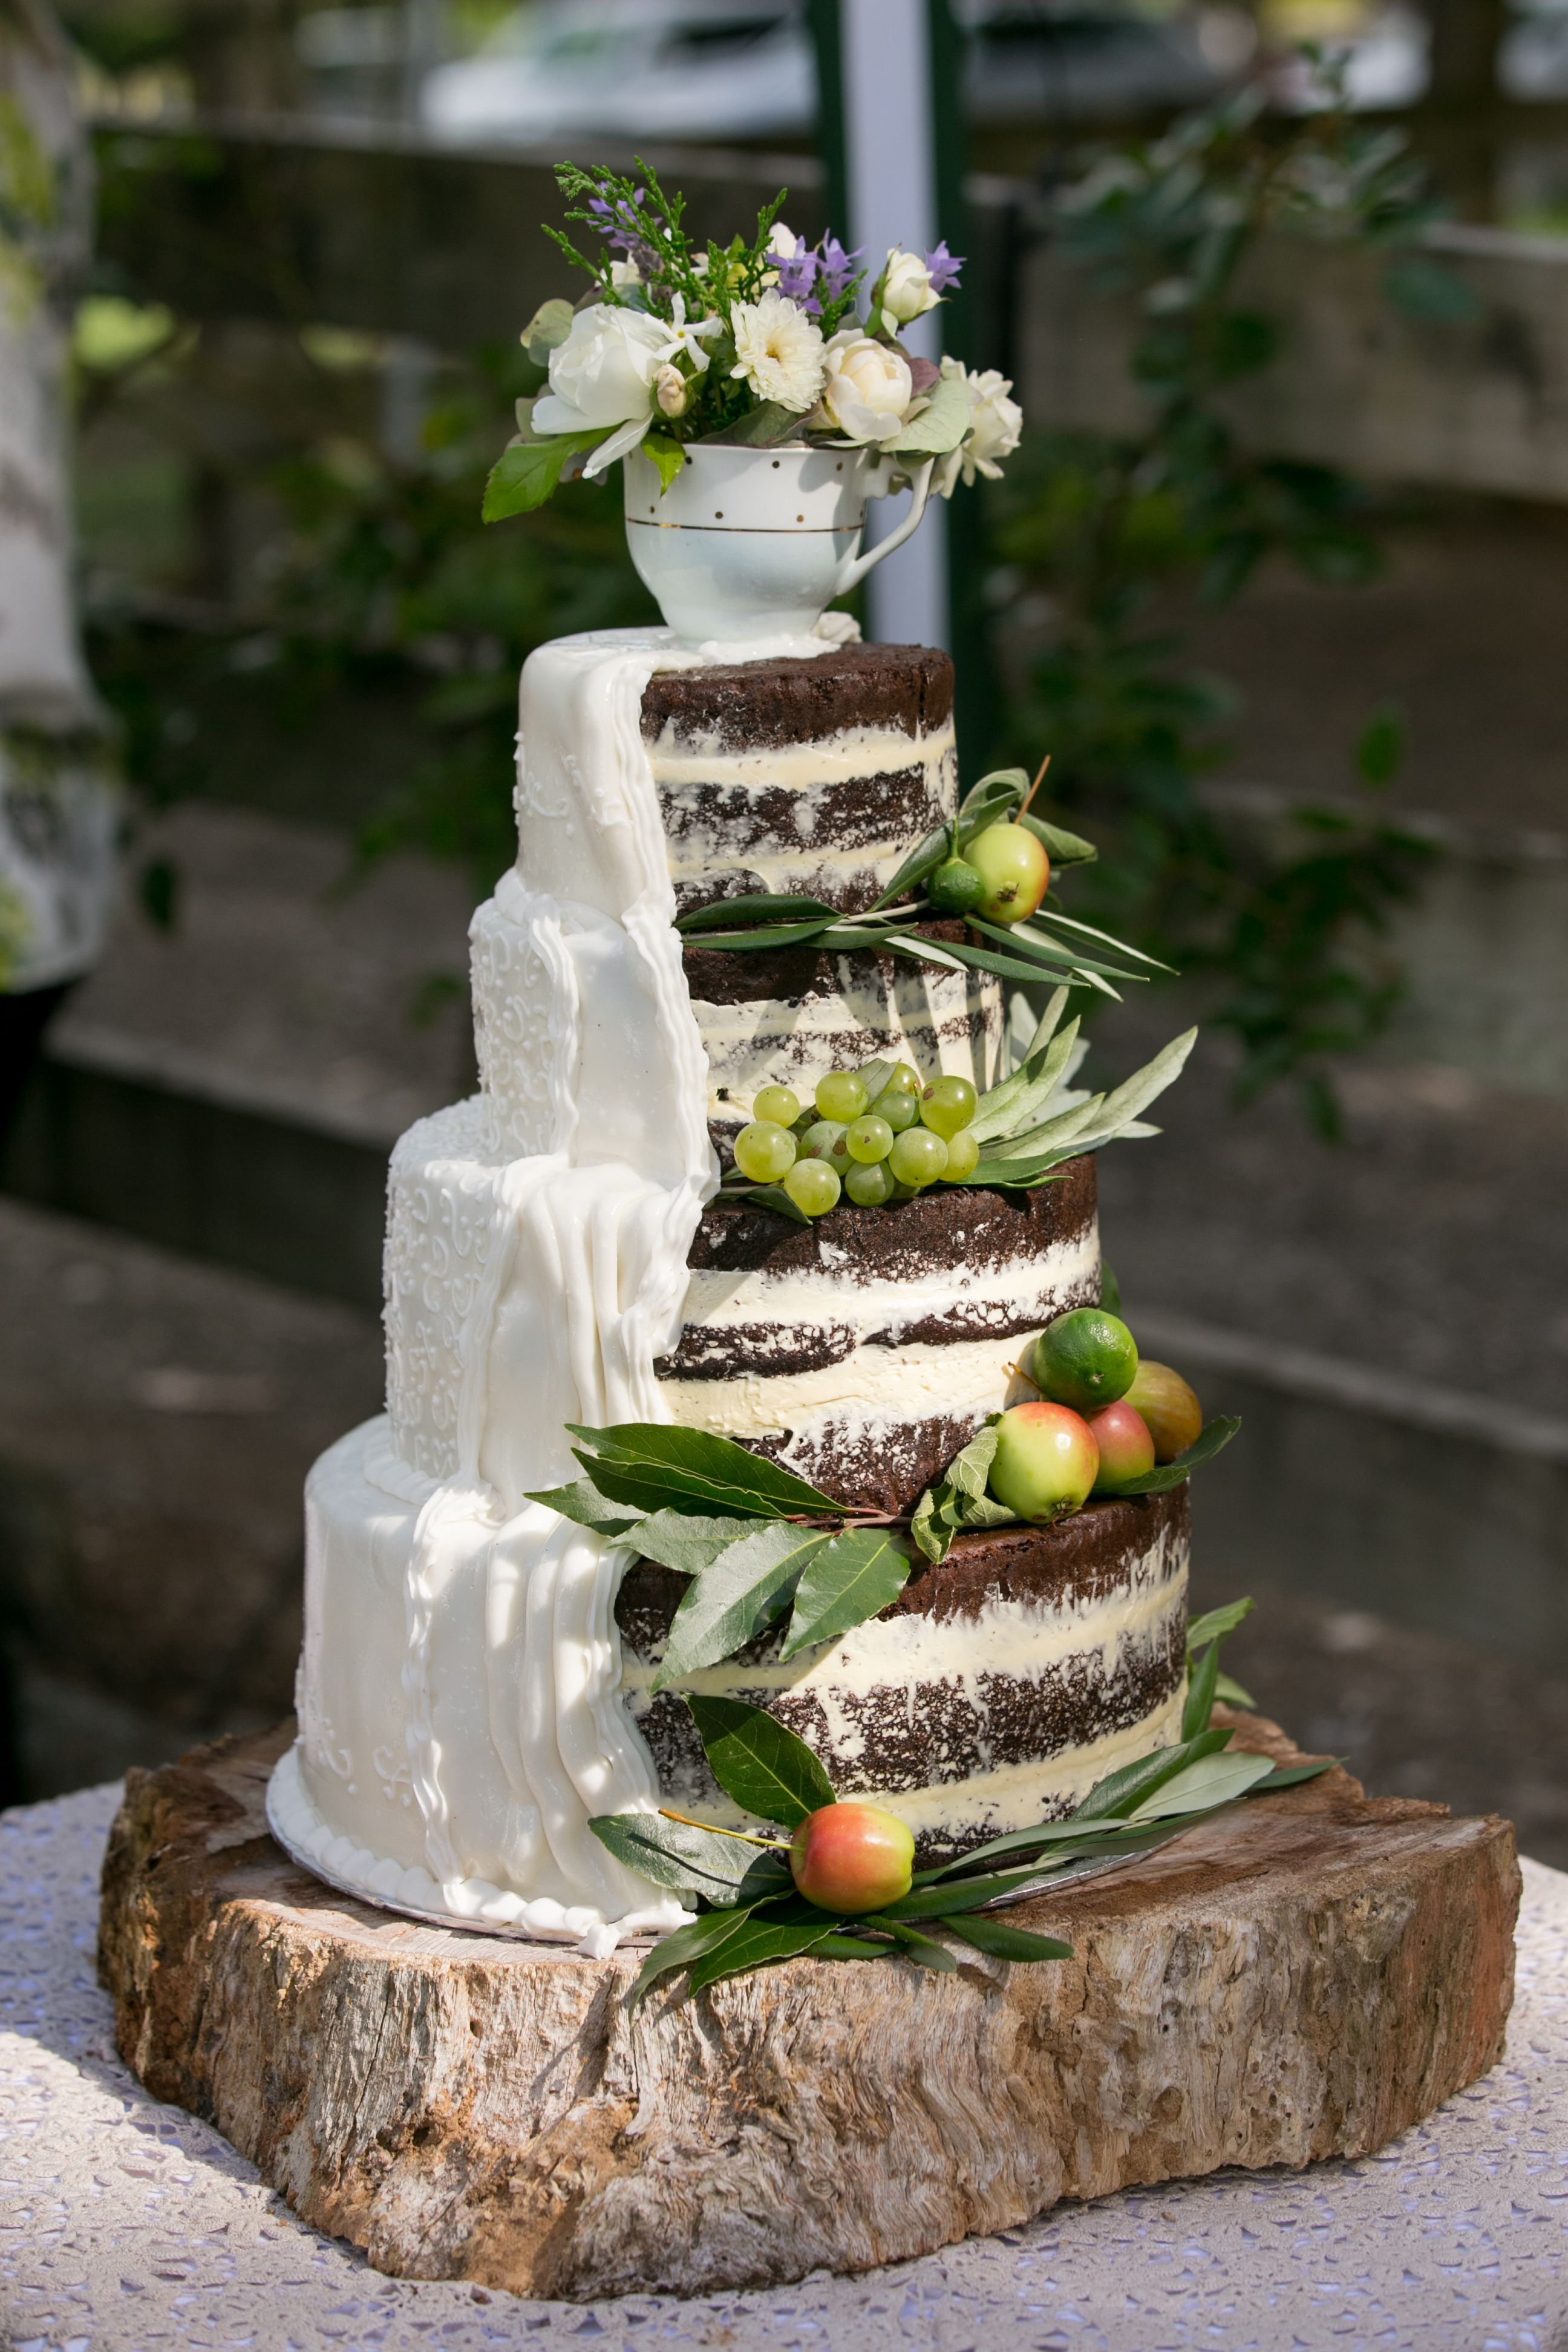 I Like The Idea It Would Be A Very Beautiful Cake With